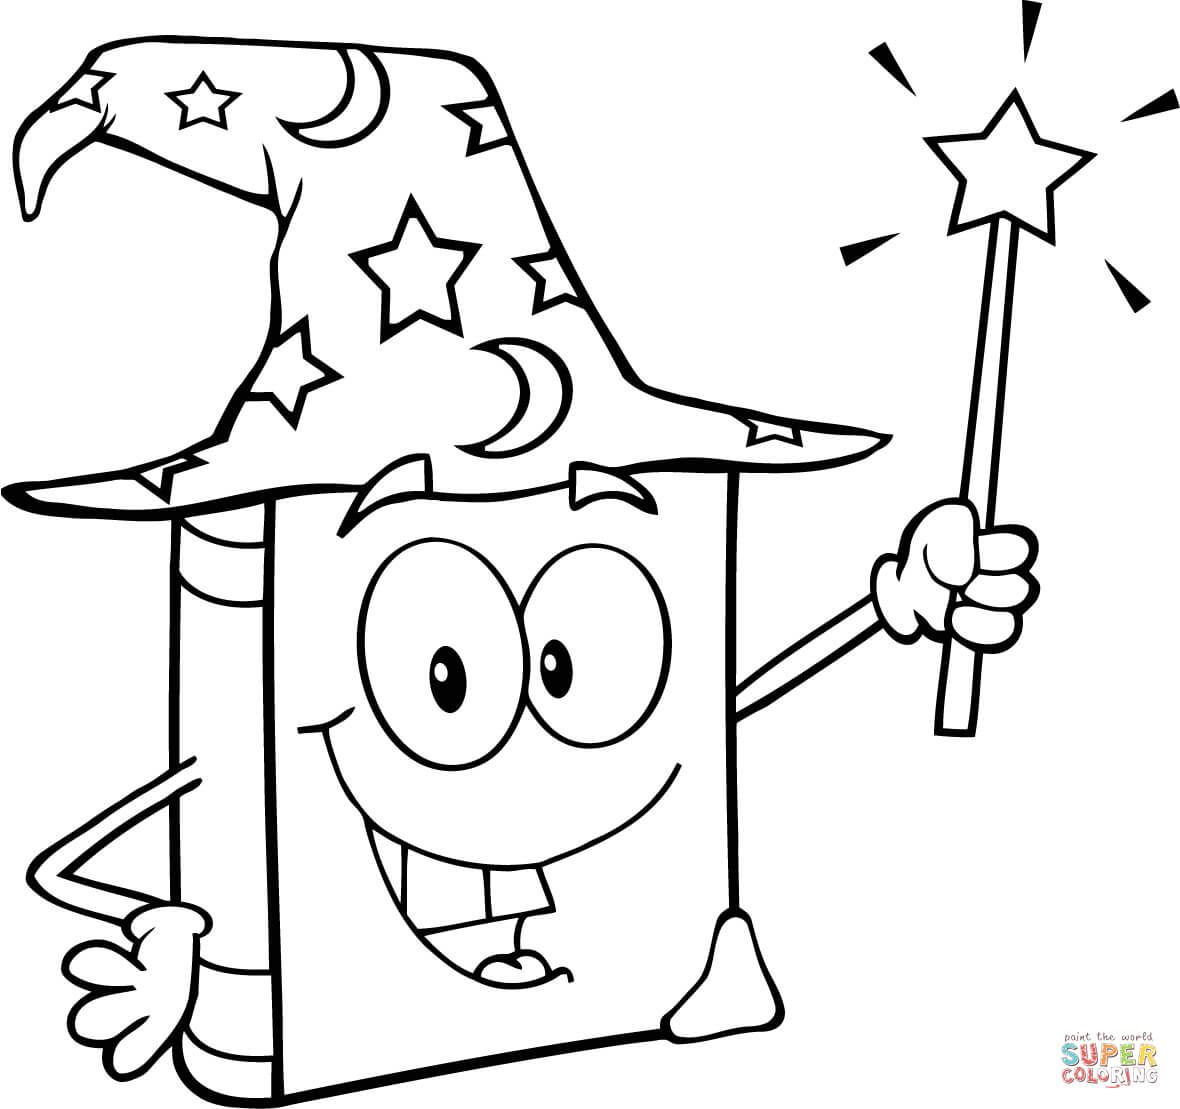 Printable Star Coloring Page Best Of Magic Colouring Pages Google